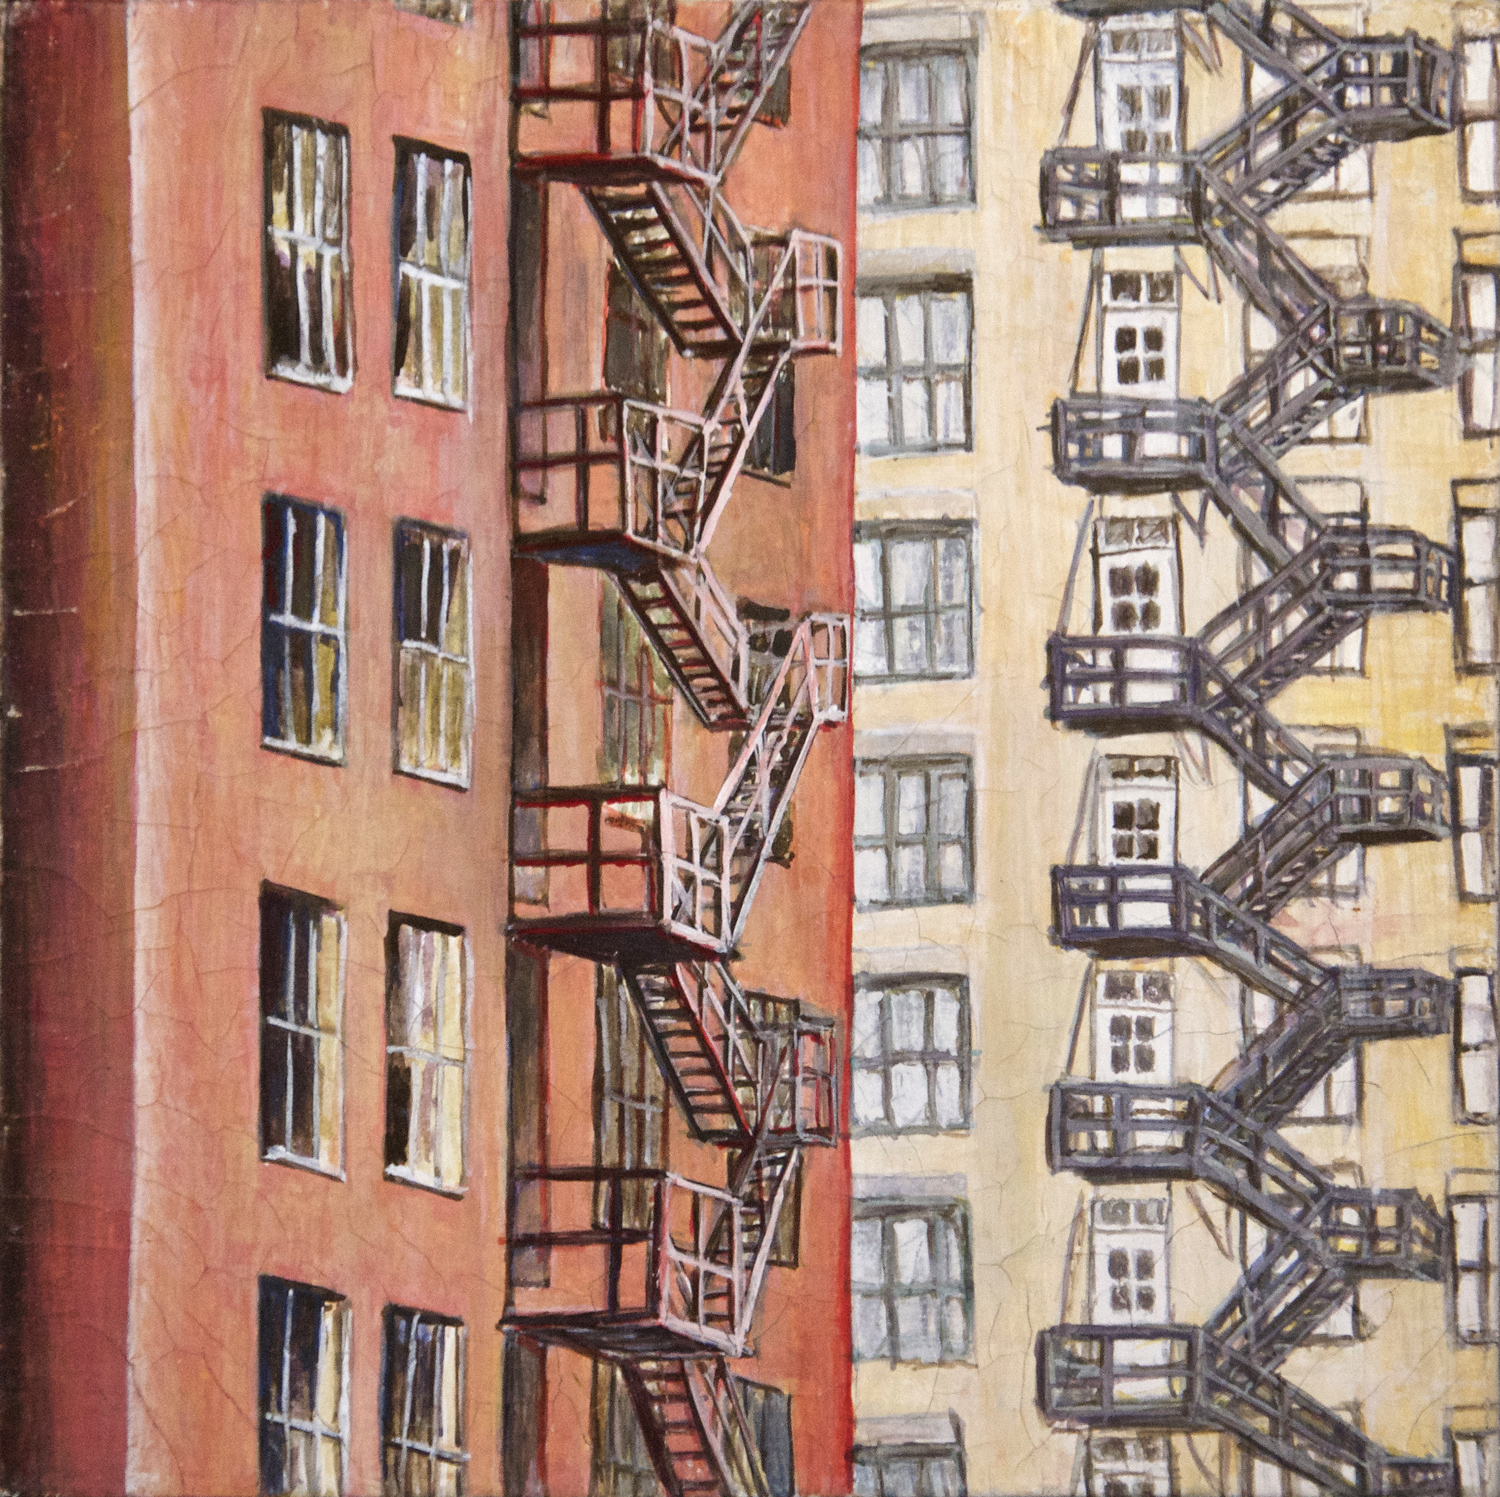 Red & Yellow Fire Escapes (Chicago) gouche painting, by Billy Reiter